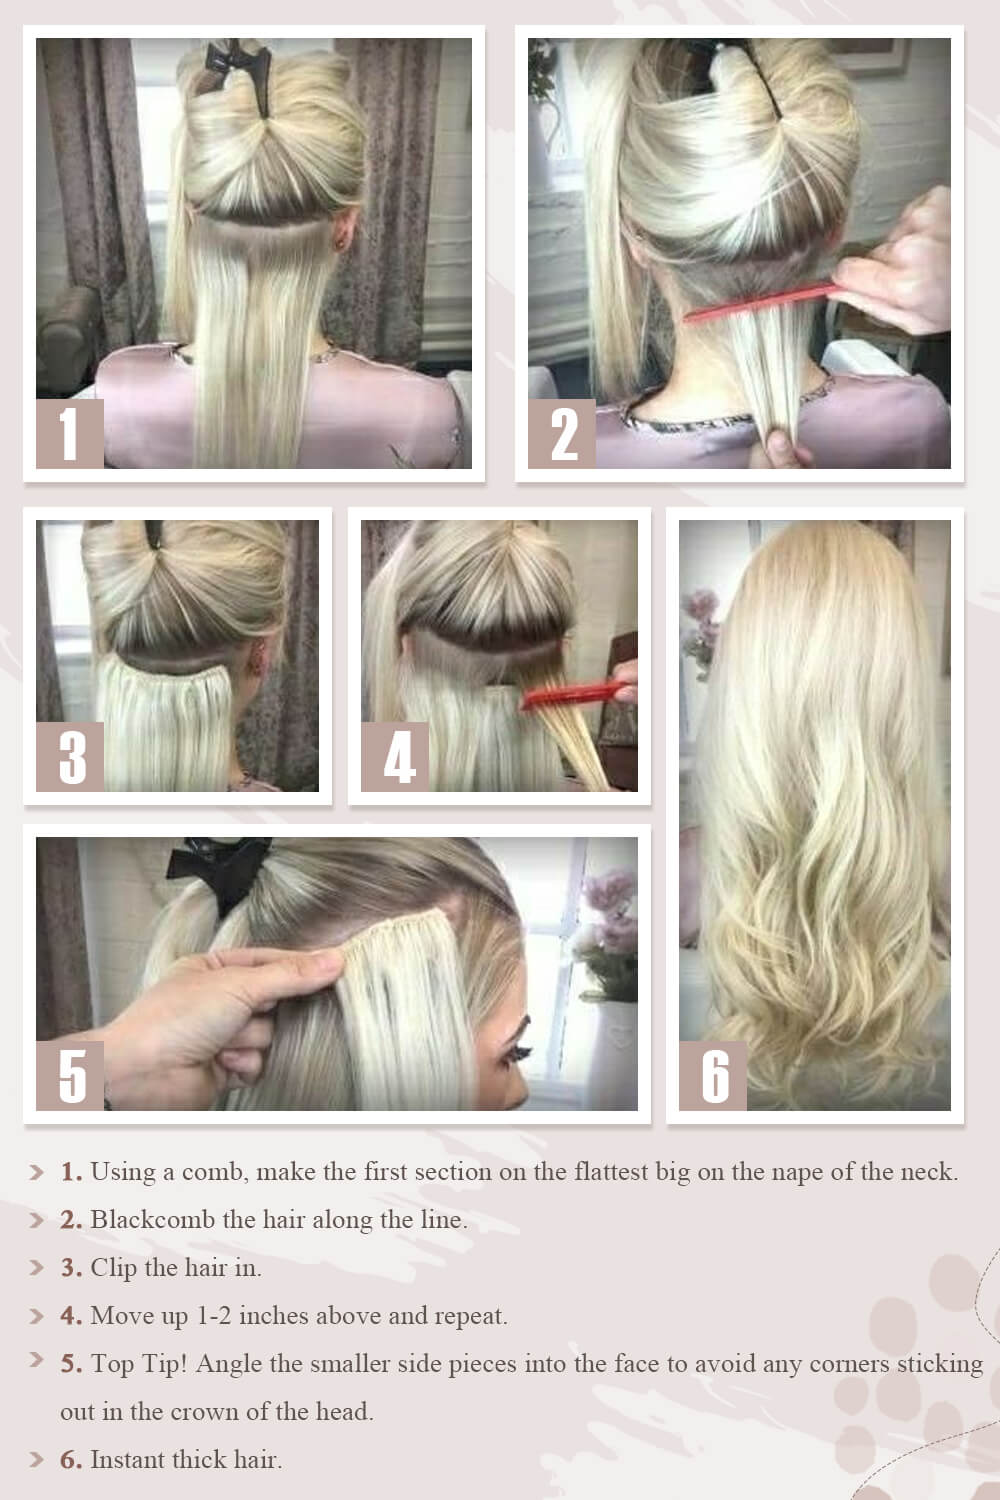 1. Using a comb, make the first section on the flattest big on the nape of the neck. 2. Blackcomb the hair along the line. 3. Clip the hair in. 4. Move up 1-2 inches above and repeat. 5. Top Tip! Angle the smaller side pieces into the face to avoid any corners sticking out in the crown of the head. 6. Instant thick hair.